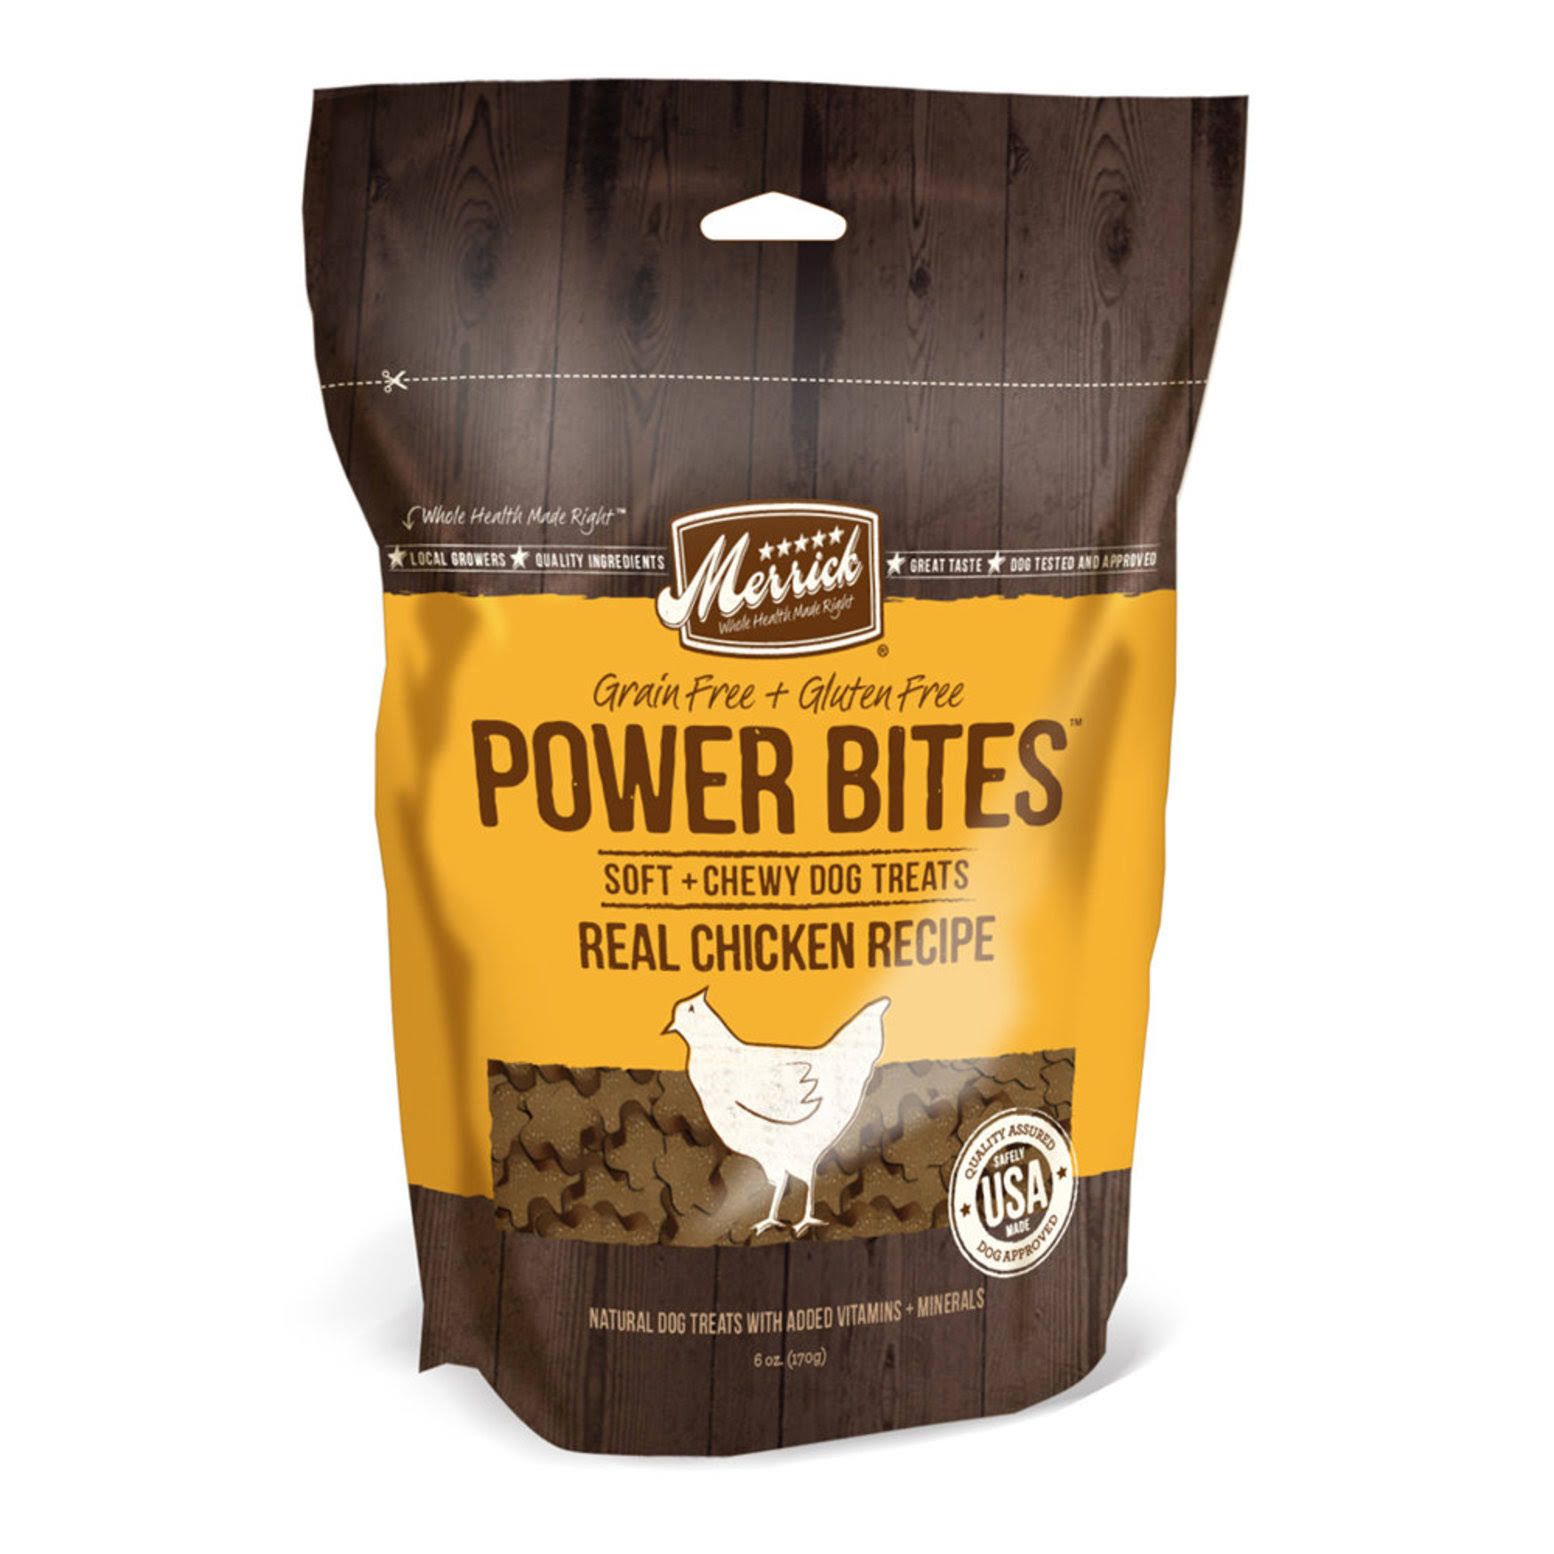 Merrick Power Bites Soft & Chewy Dog Treats - Real Chicken Recipe, 6oz